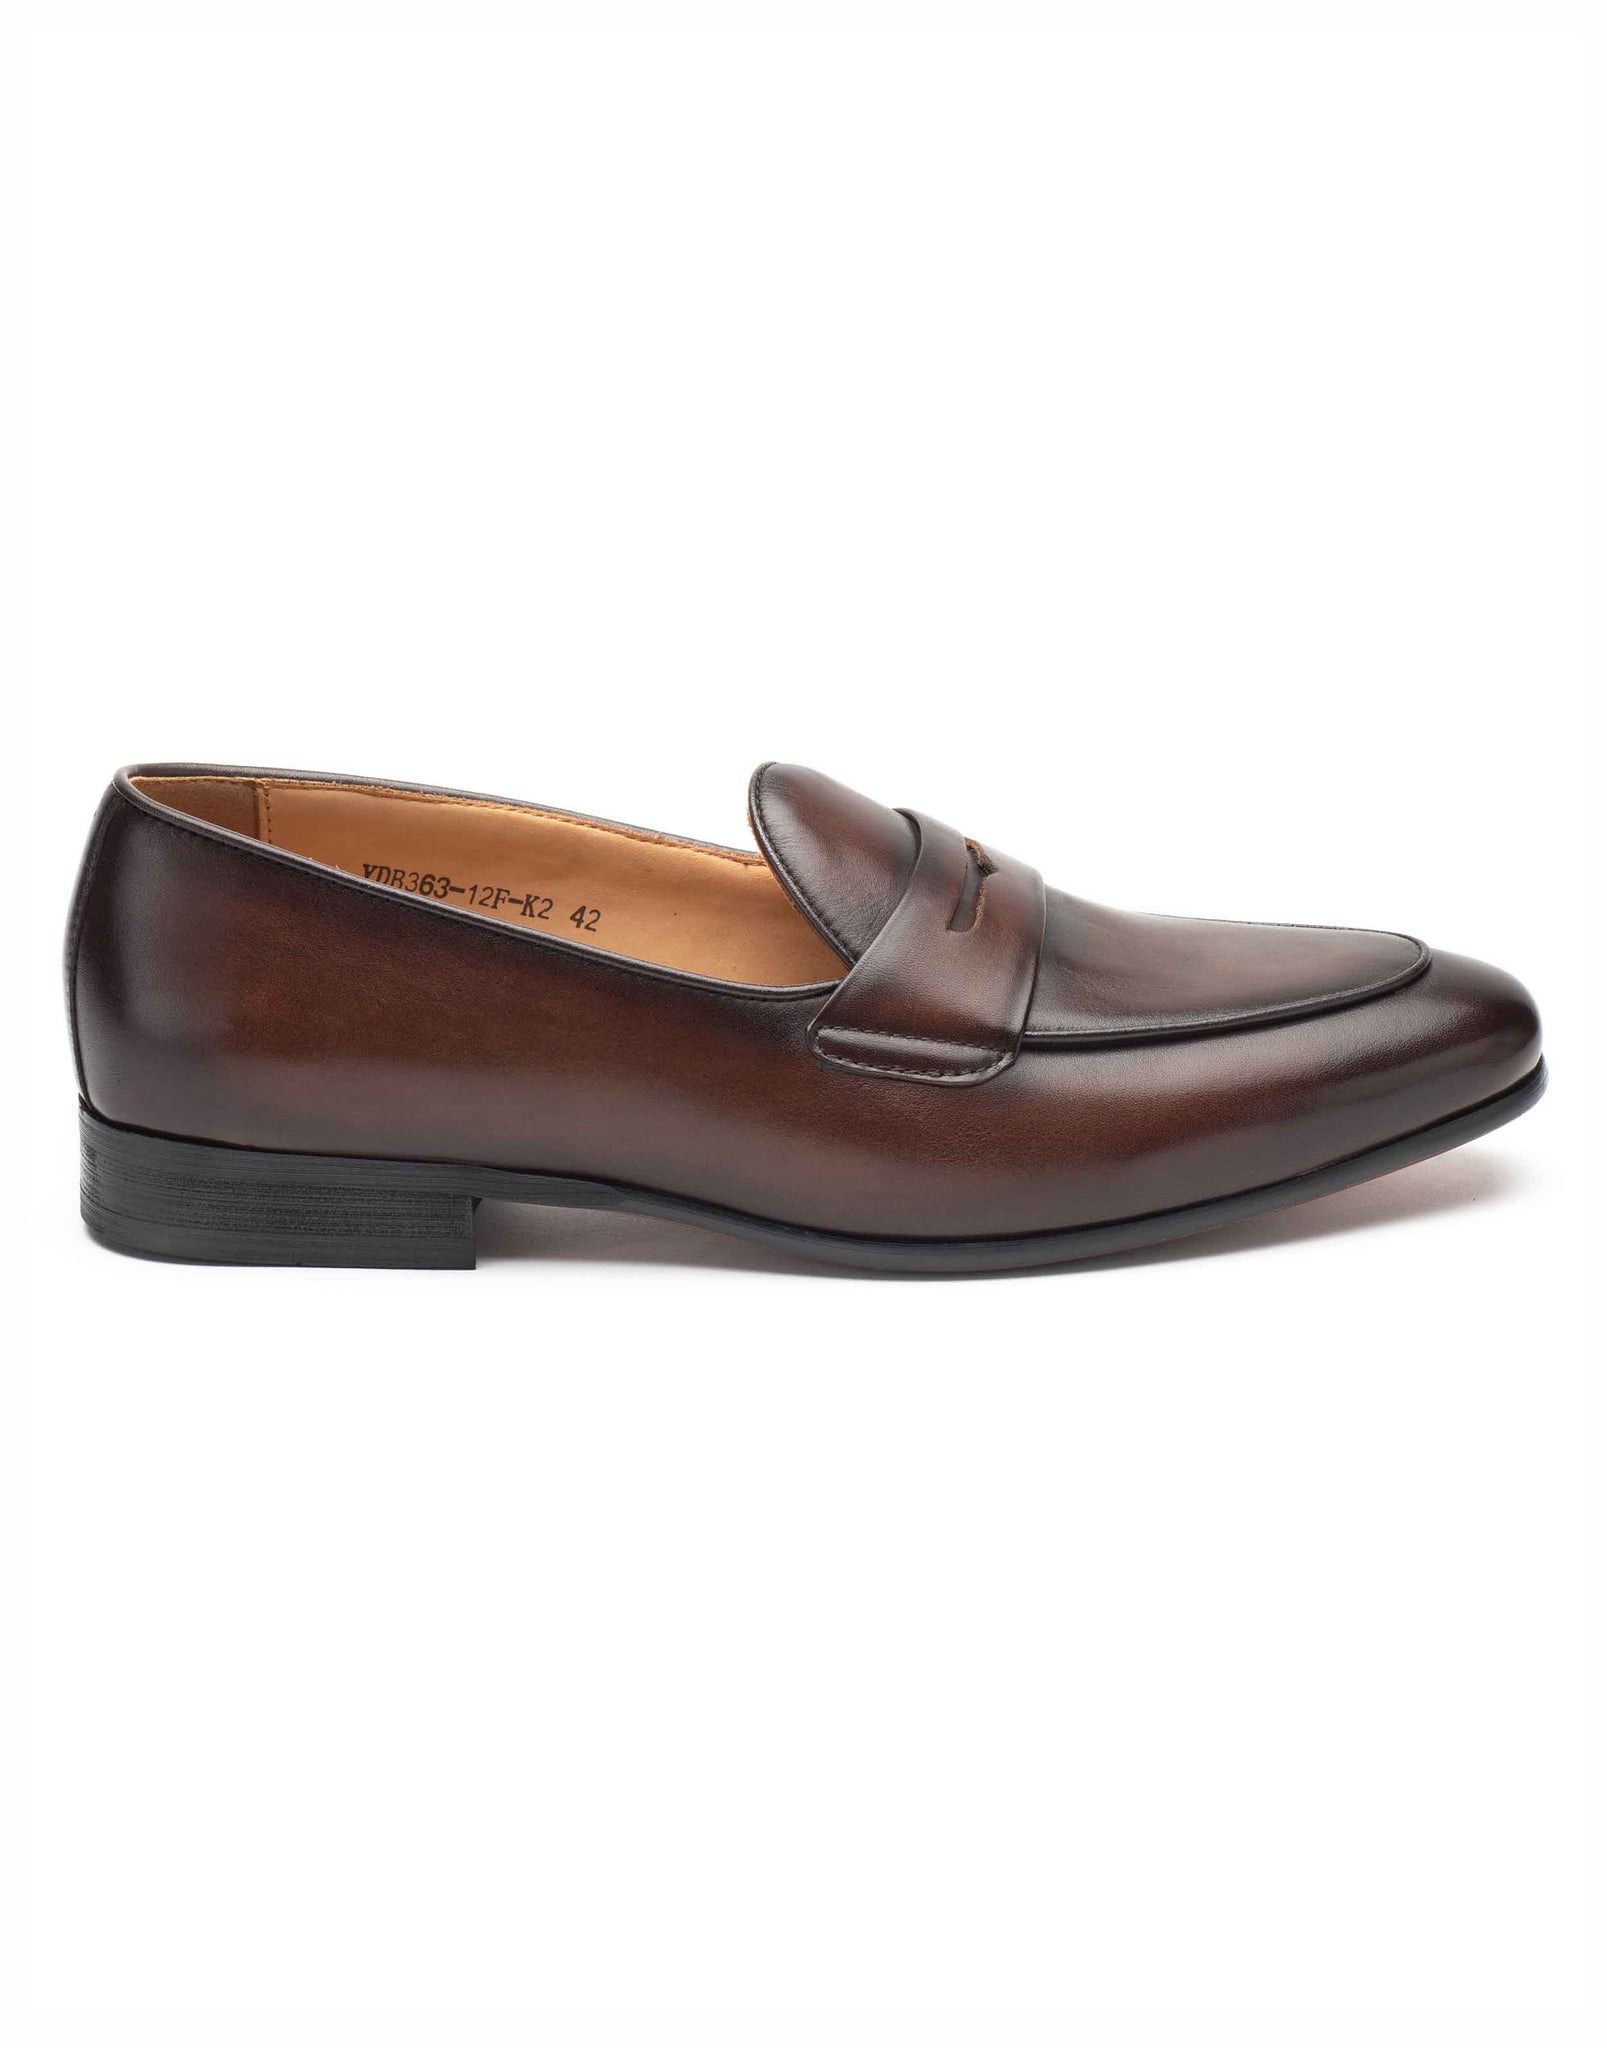 Cocoa Penny Loafer-YDB363-12F-K2